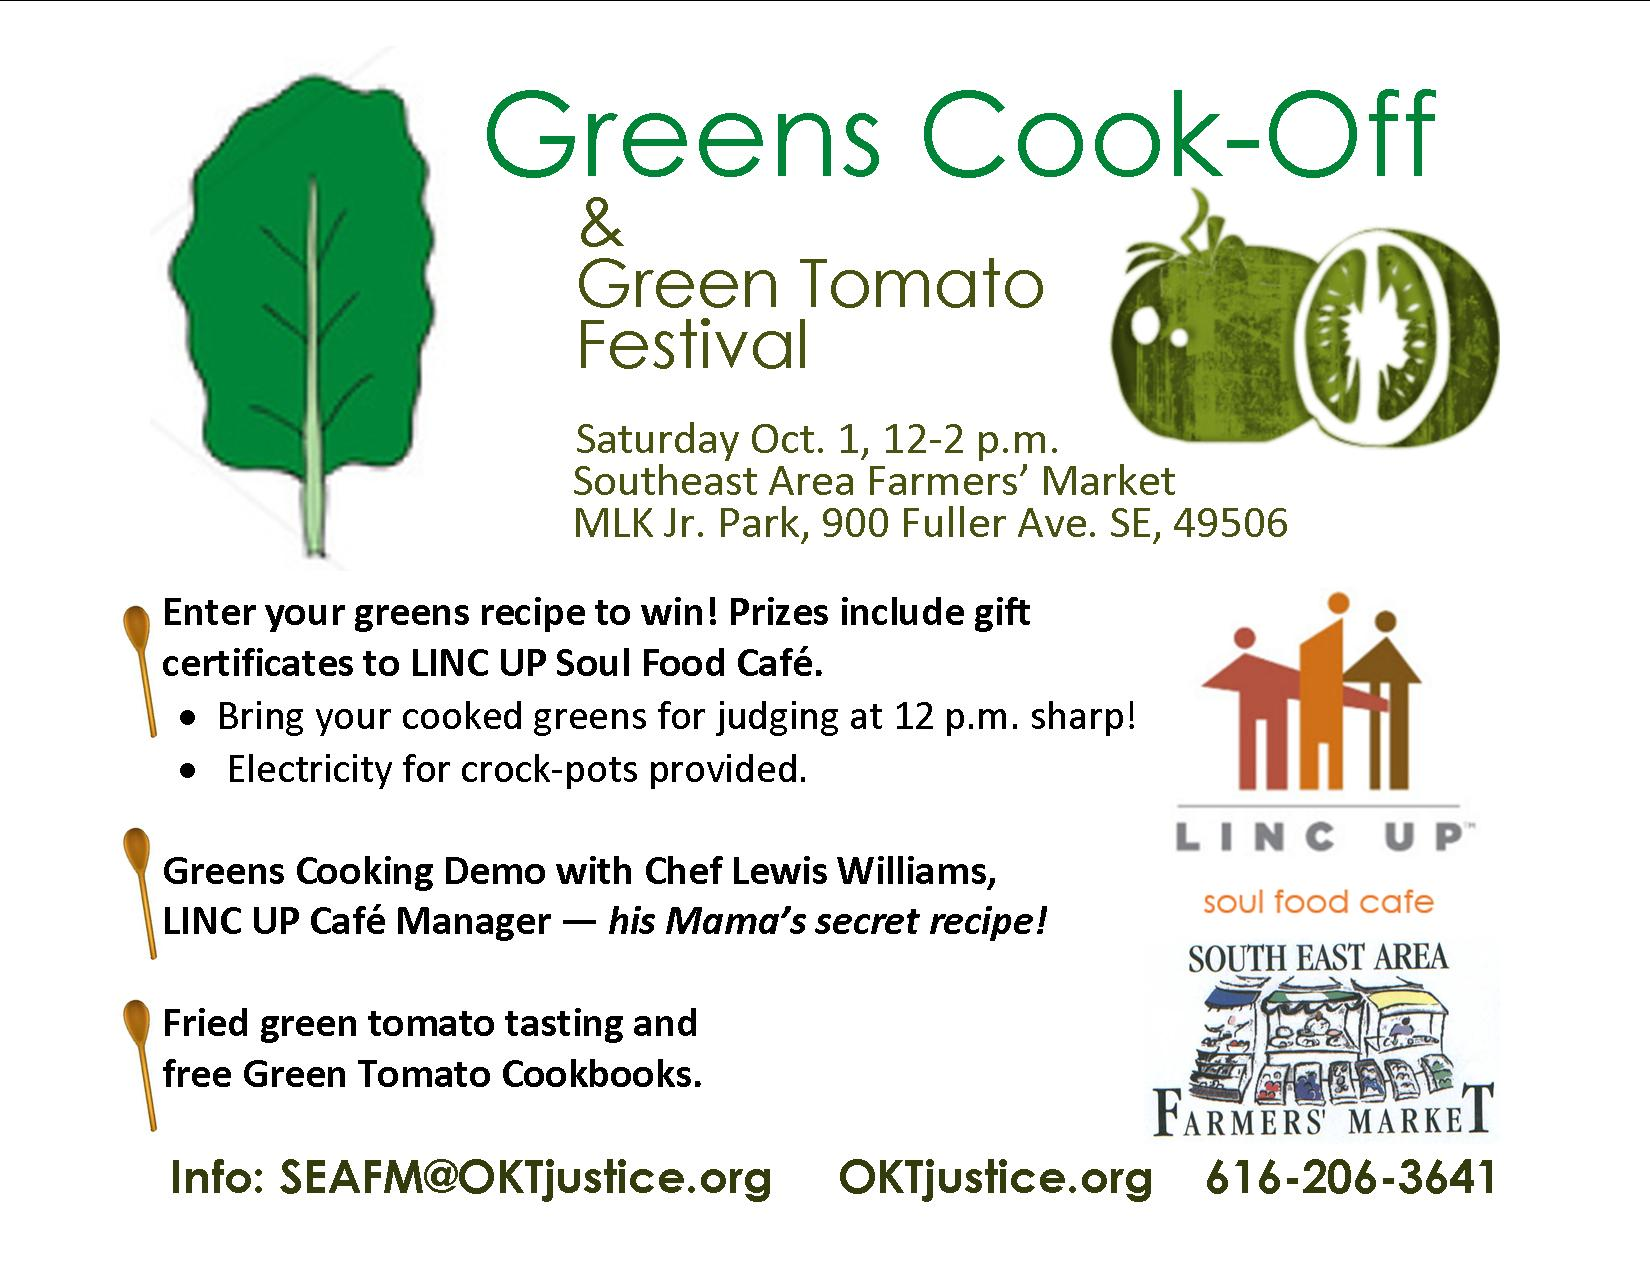 greens-cook-off-2016-1-4